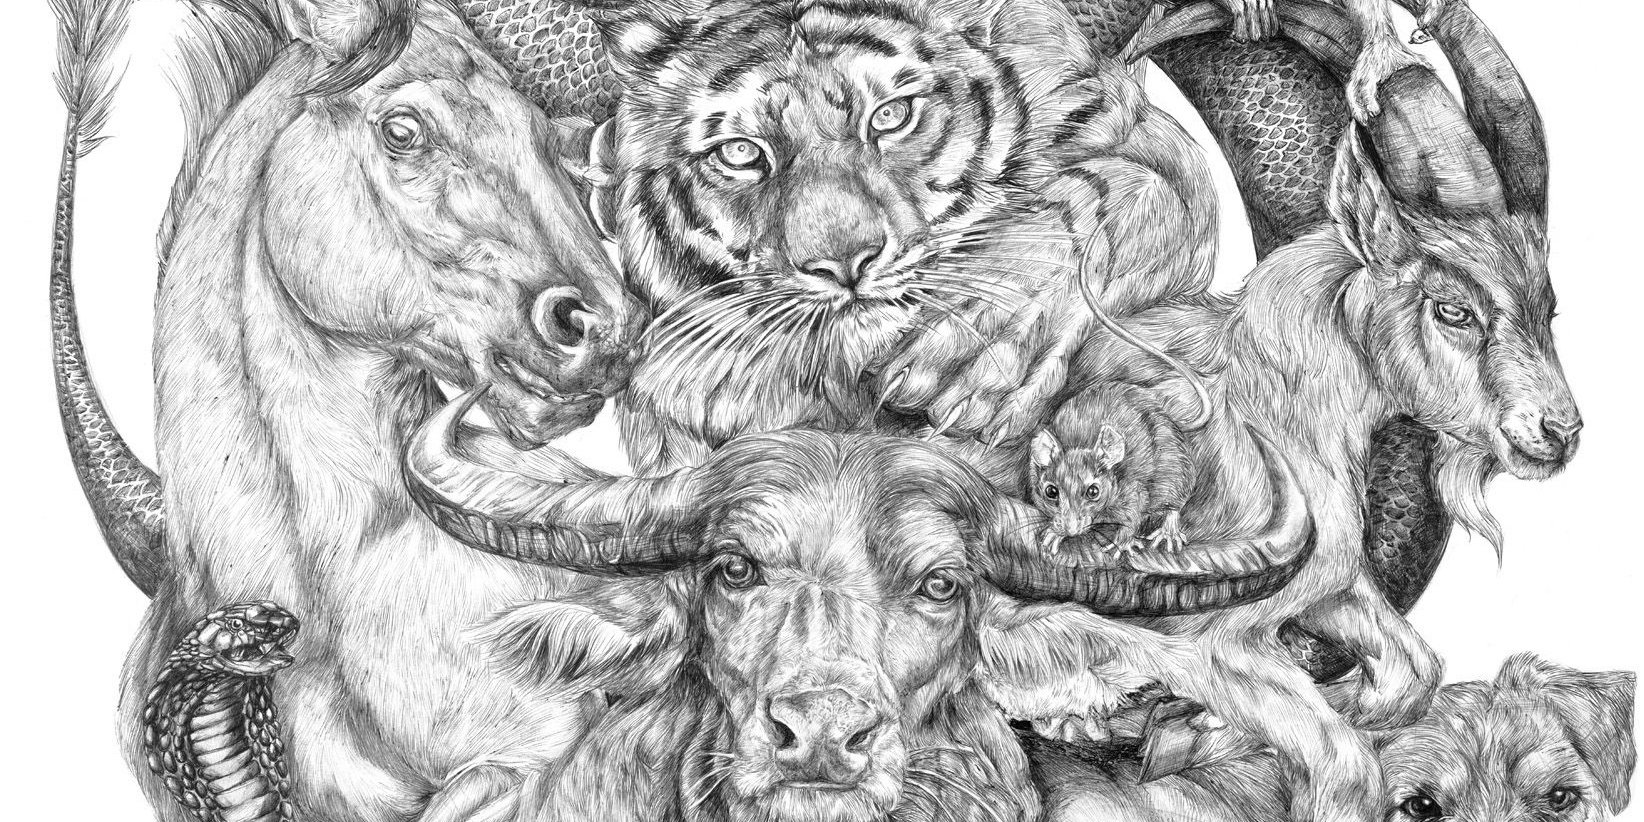 19 Year Old Artist Spent Her Summer Drawing This Epic Chinese Zodiac